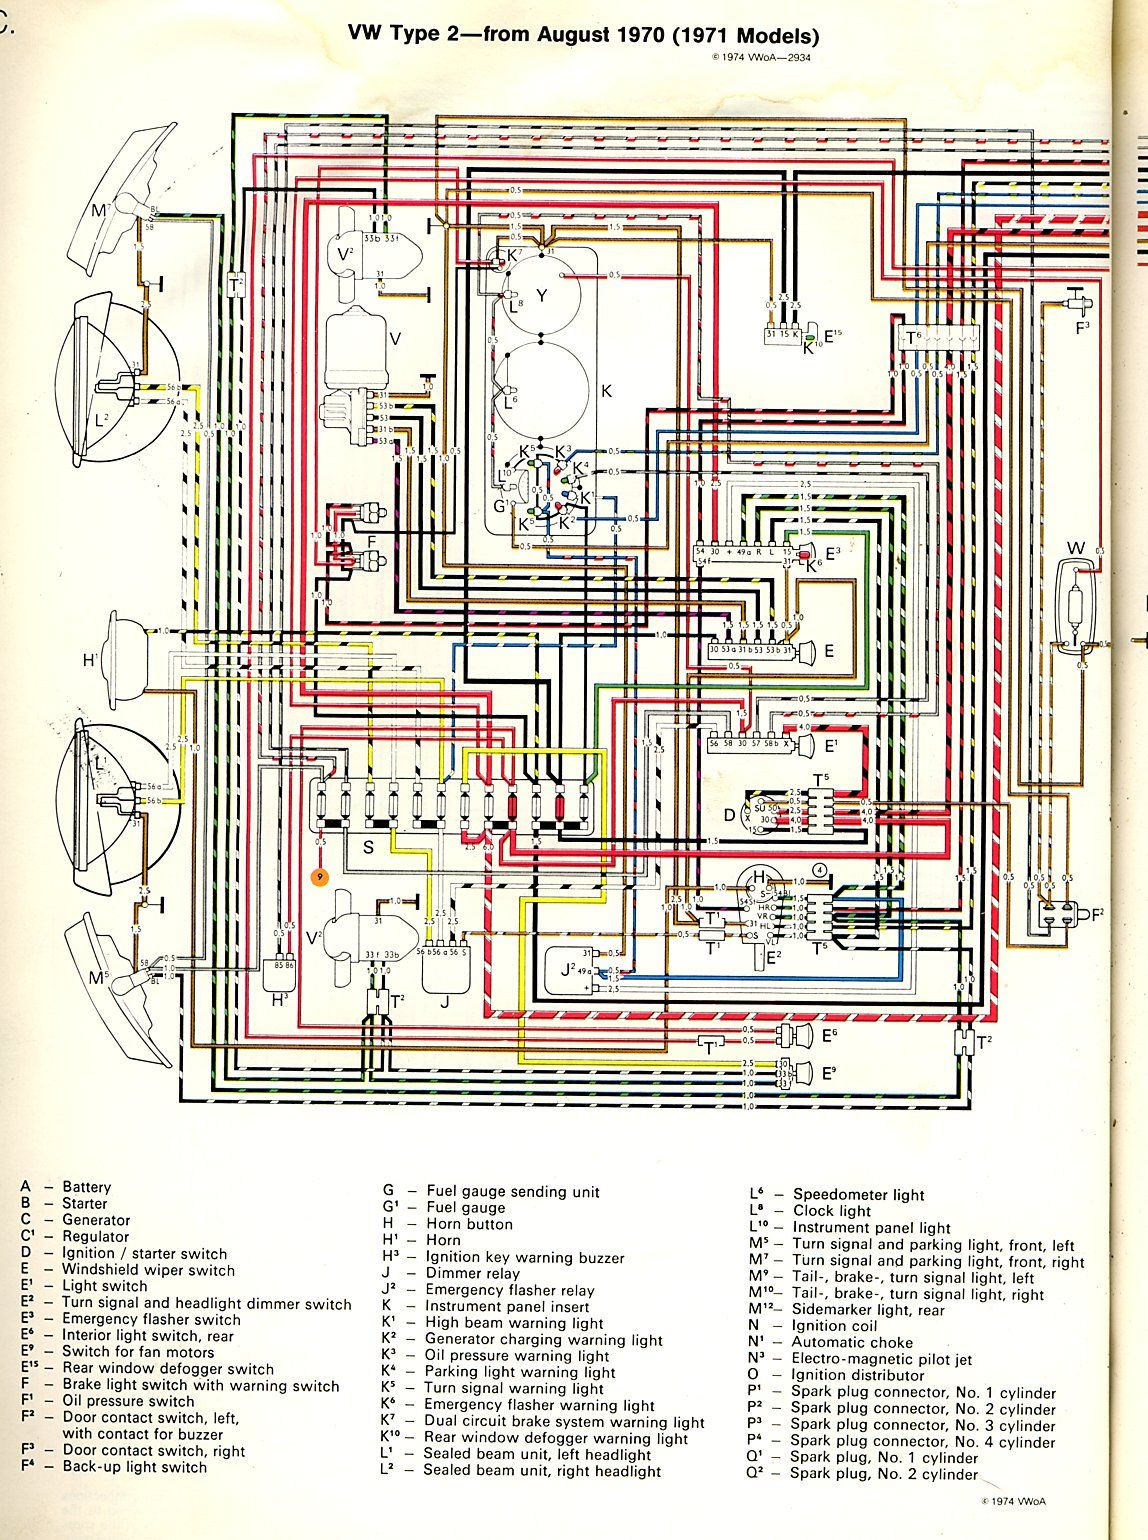 1971 Bus Wiring diagram | TheGoldenBug.com | Vw bus ... Jeep Turn Signal Wiring Diagram on ford 8n wiring diagram, 1960 willys l6-226 12 volt wiring diagram, 1979 jeep wiring diagram, jeep cj5 wiring-diagram, 1986 jeep wiring diagram, simple chopper wiring diagram, 86 cj7 distributor wiring diagram, 2014 jeep wrangler wiring diagram, 1984 jeep cj wiring diagram, 2009 dodge 4500 pto wiring diagram,